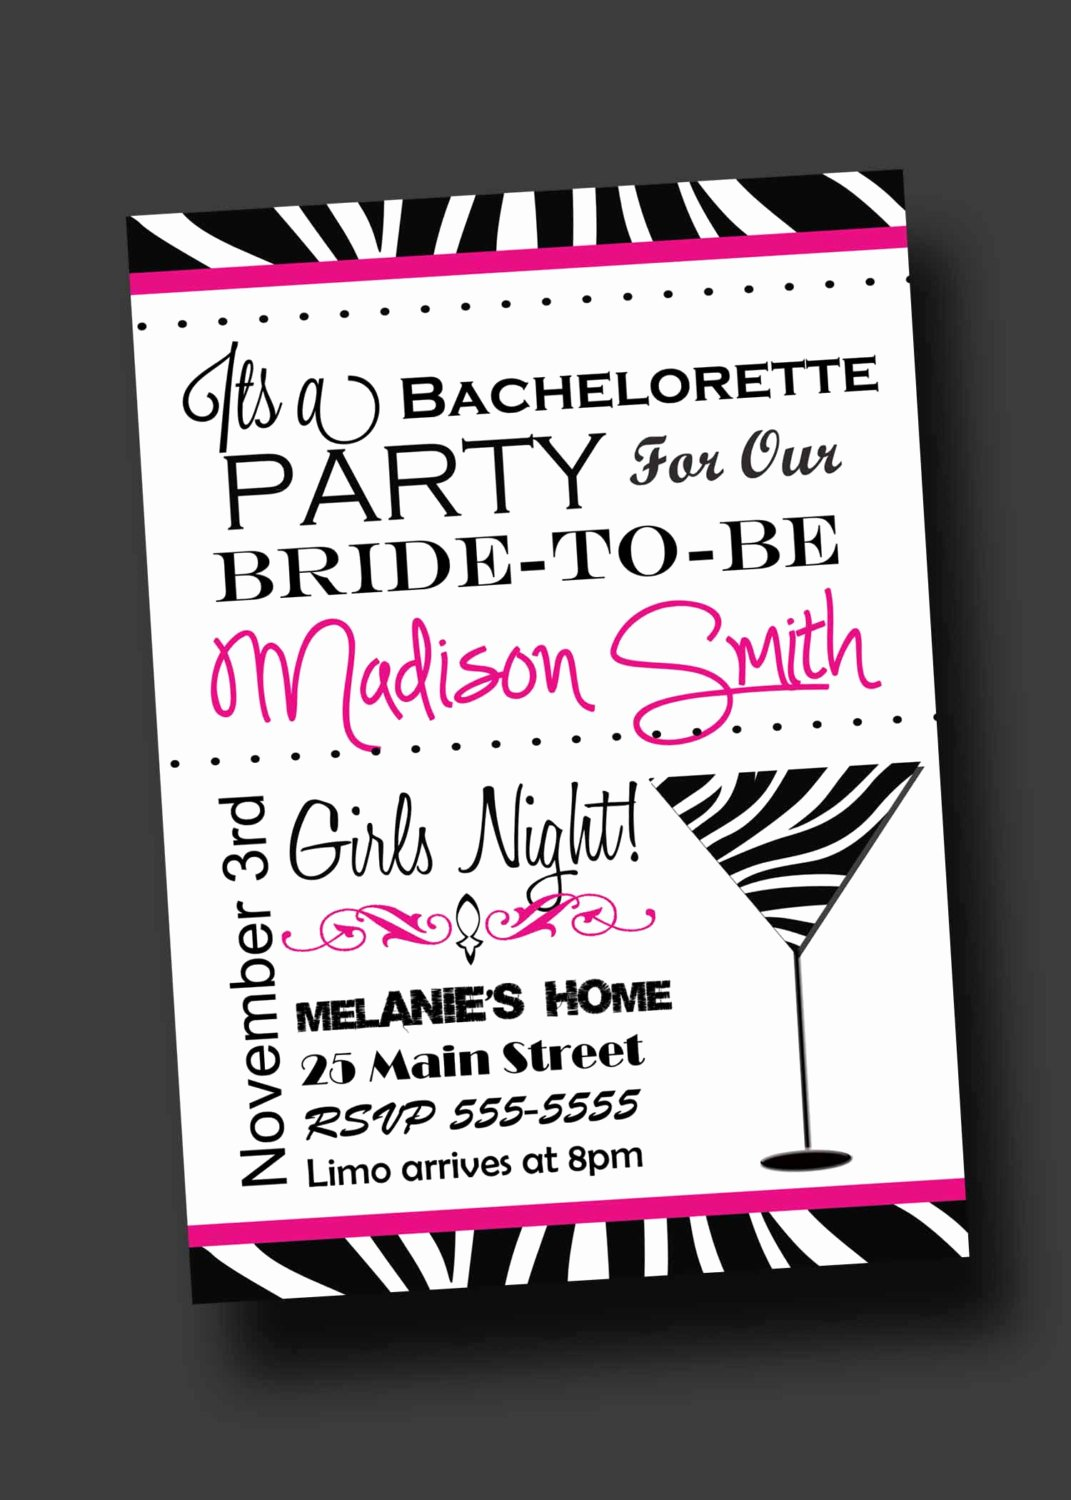 Bachelor Party Invitation Template Lovely Bachelorette Party Invitation Zebra Print Printable Digital